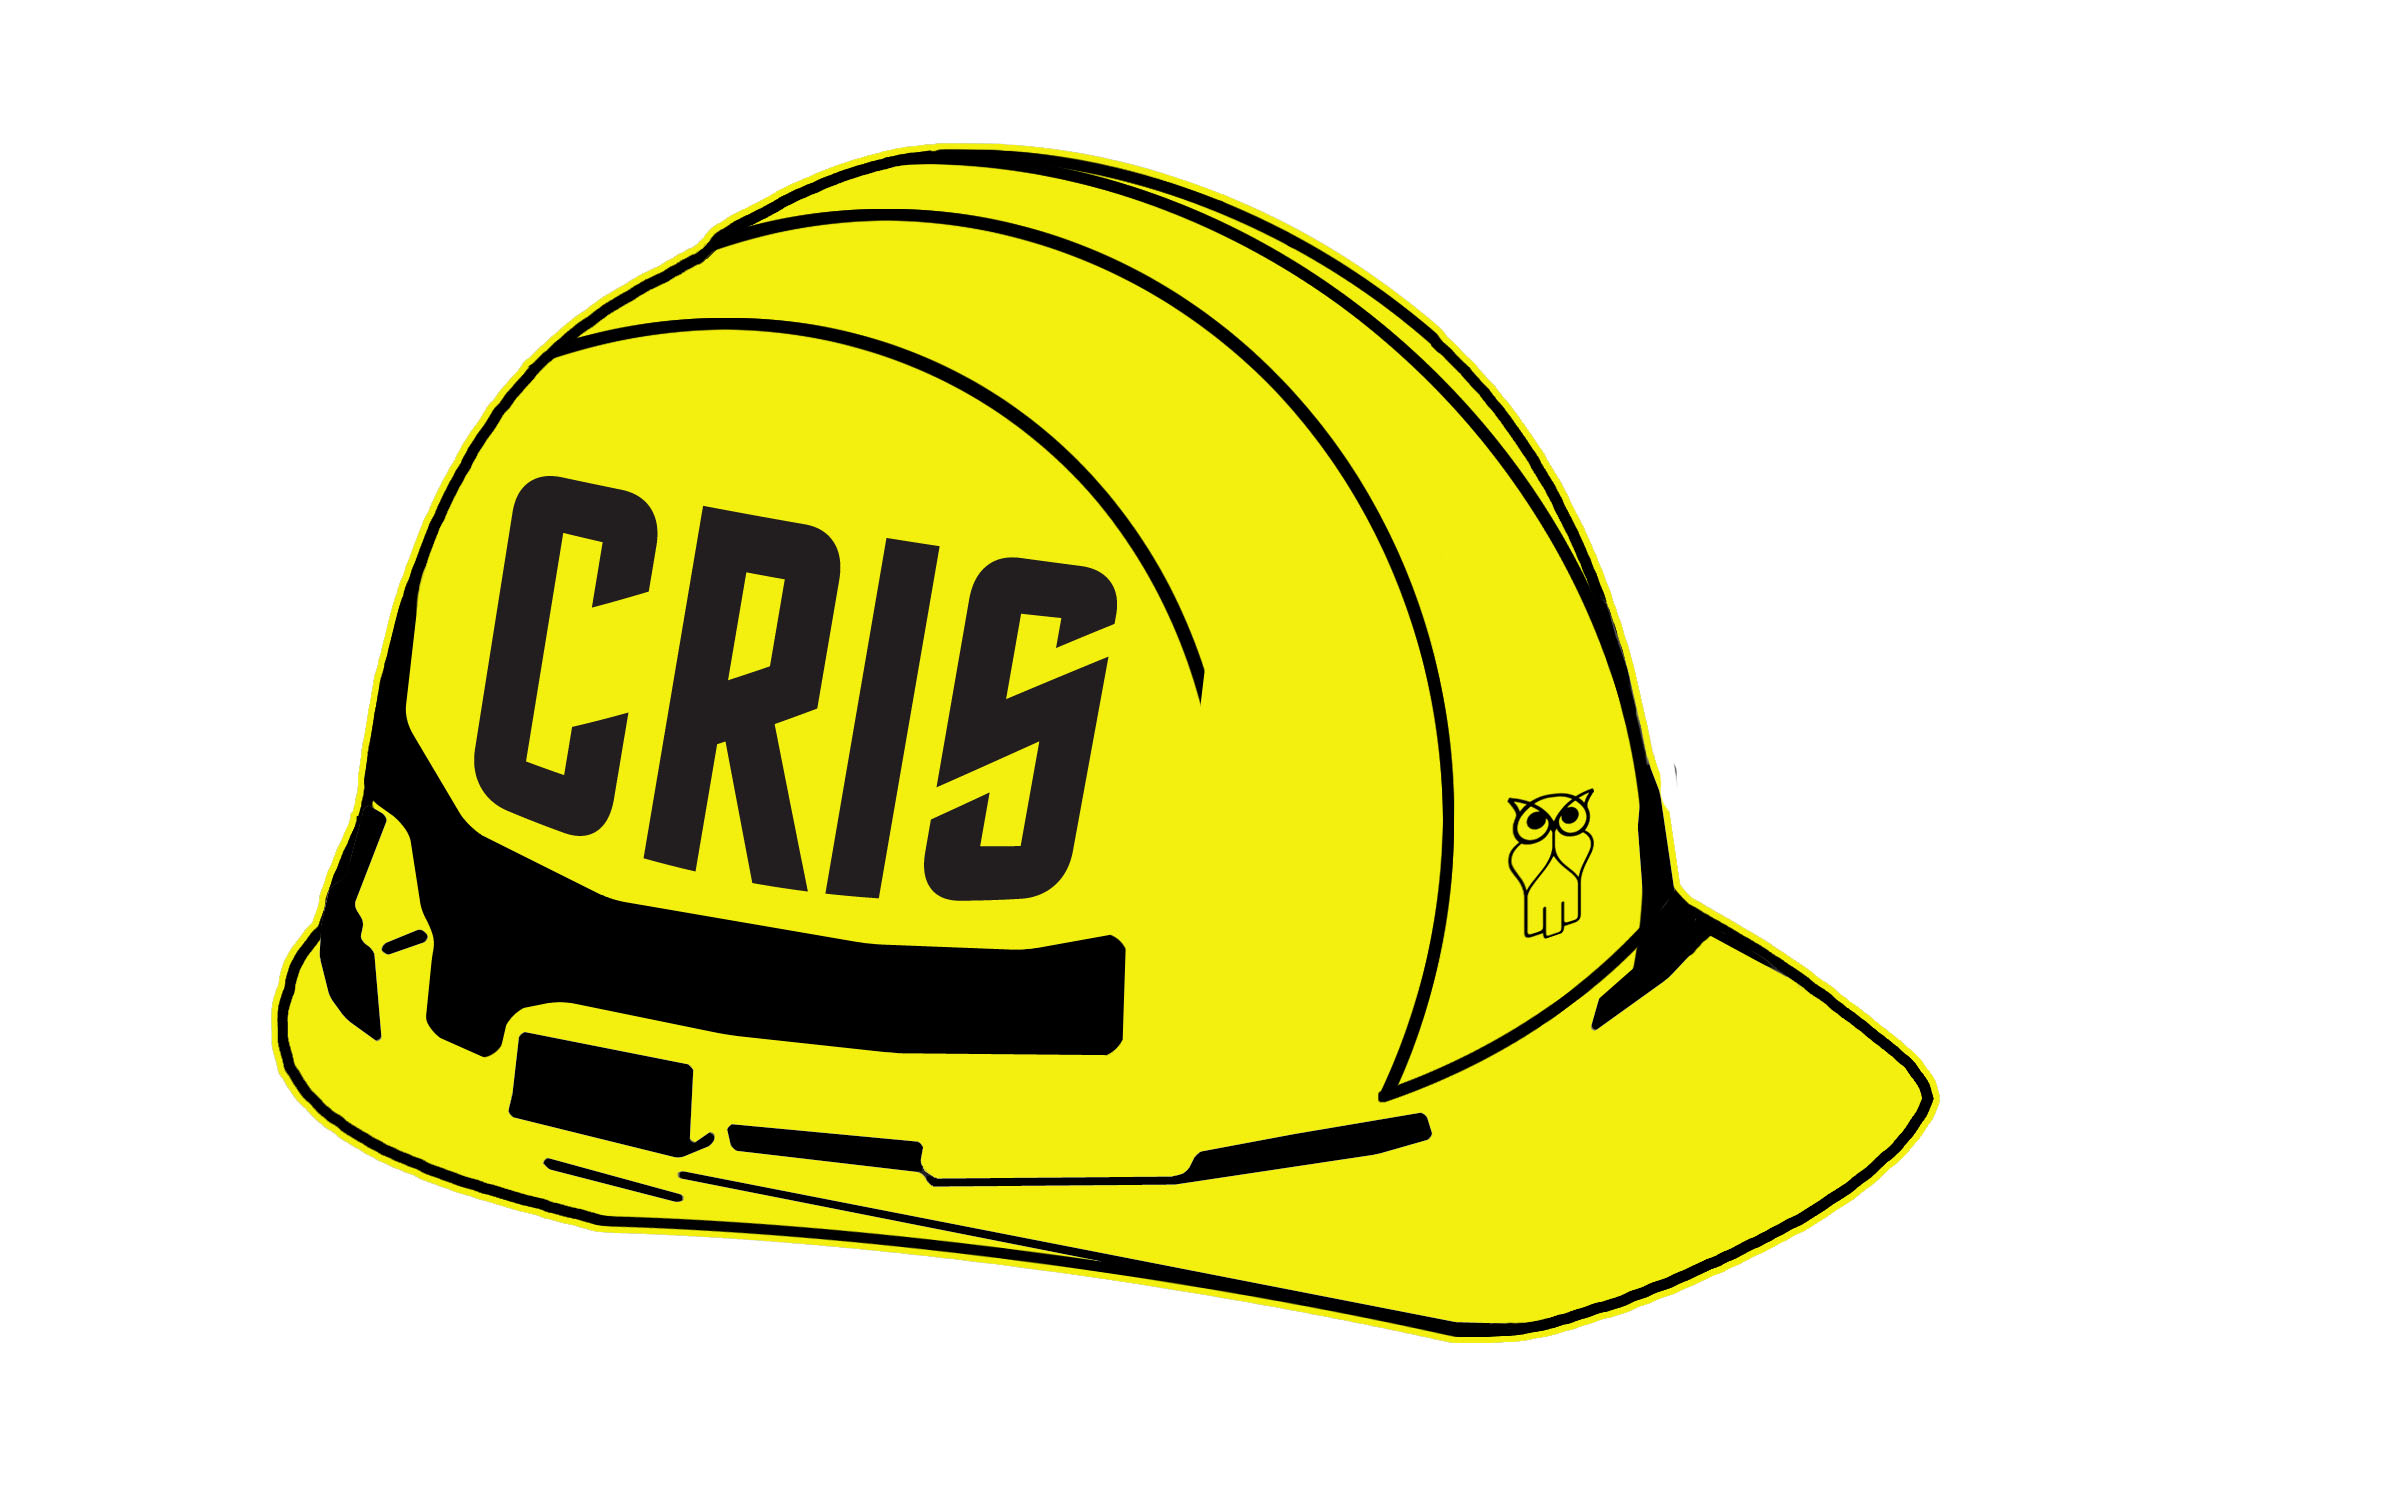 cris-hardhat-white-background.jpg